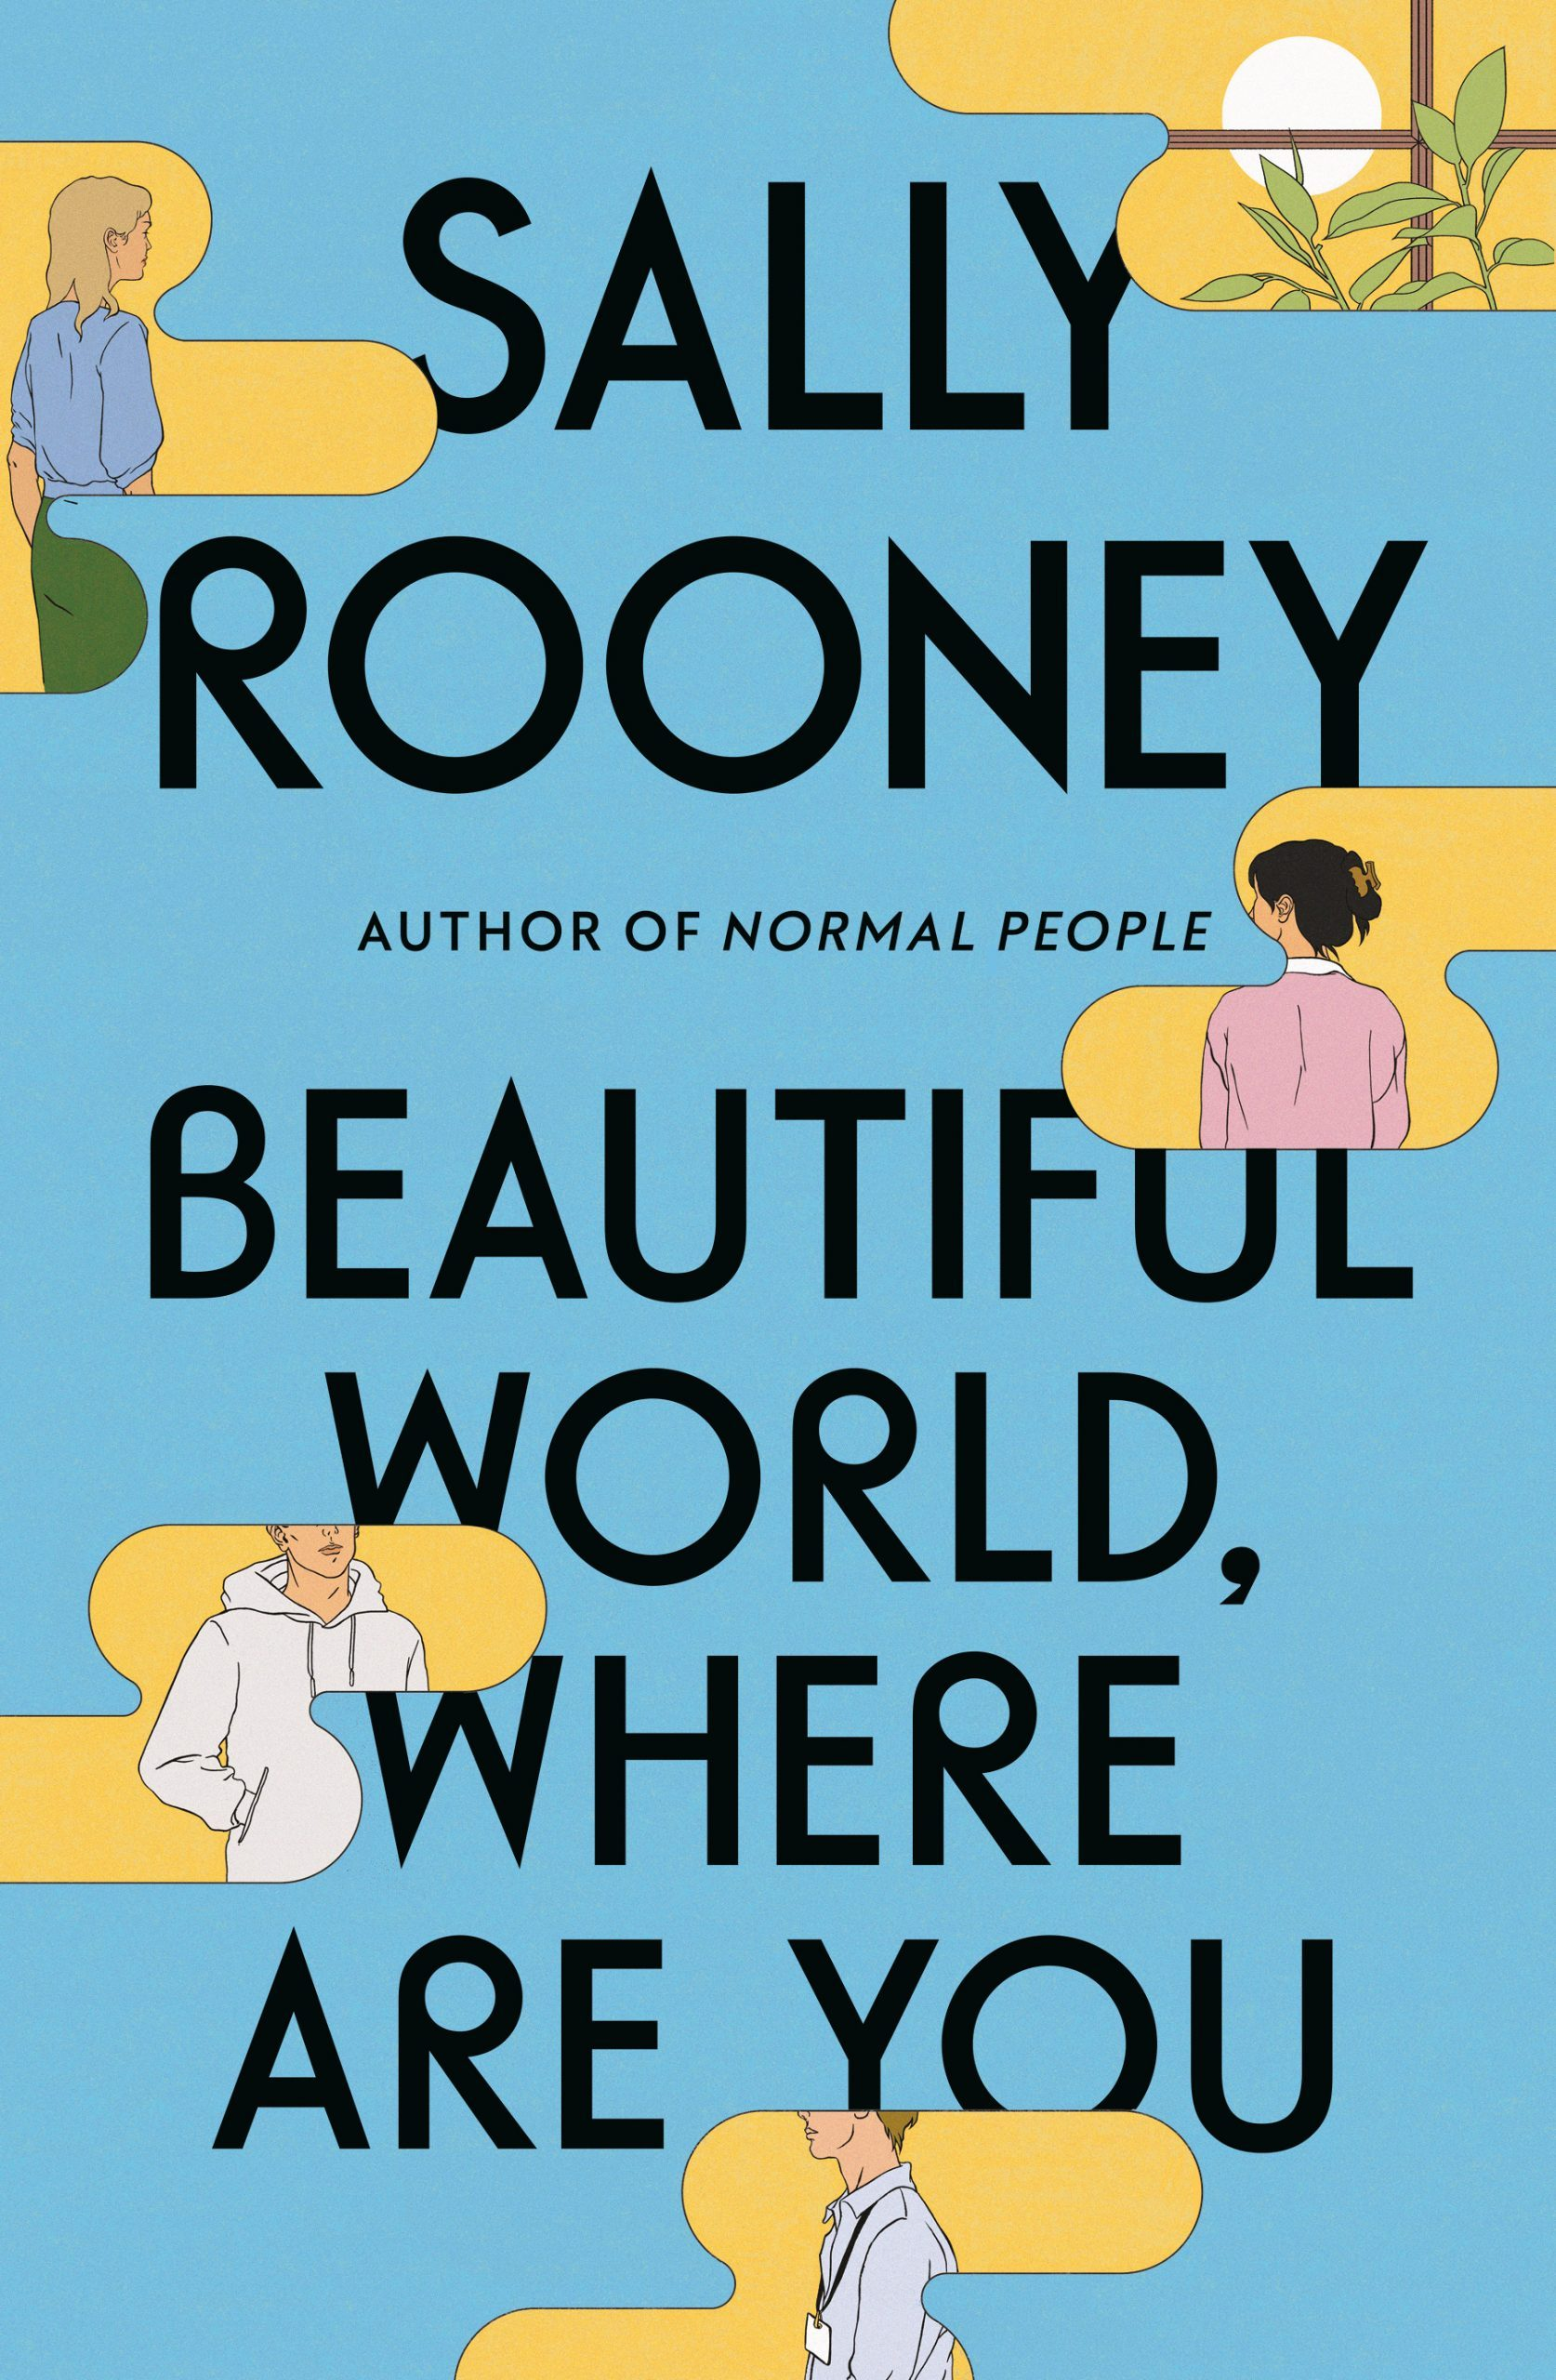 Beautiful World, Where Are You Release Date? Sally Rooney 2021 New Book